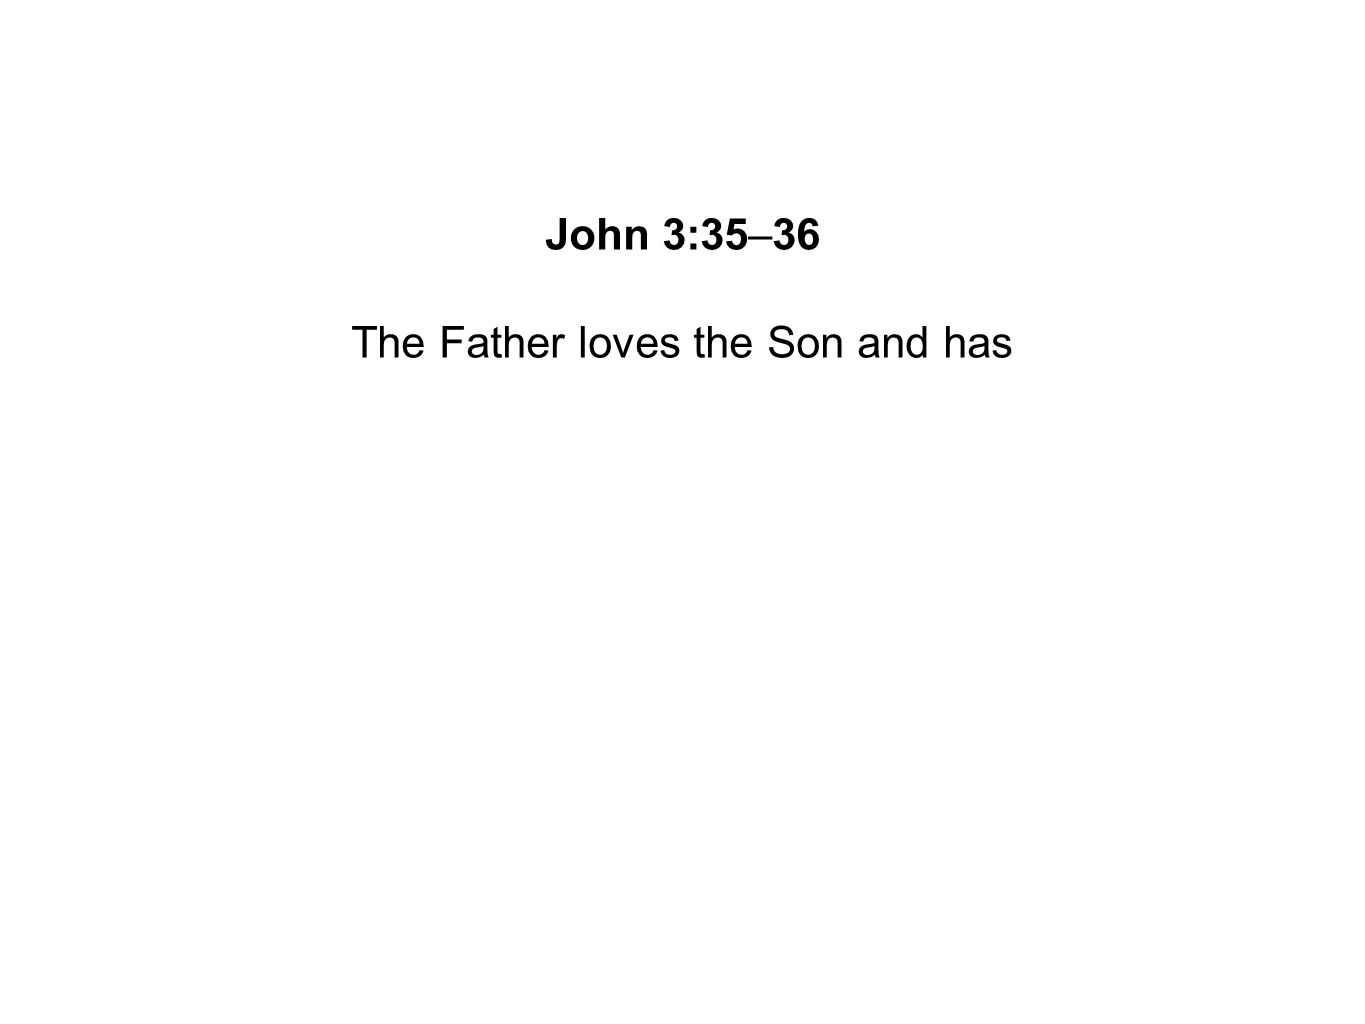 The Father loves the Son and has